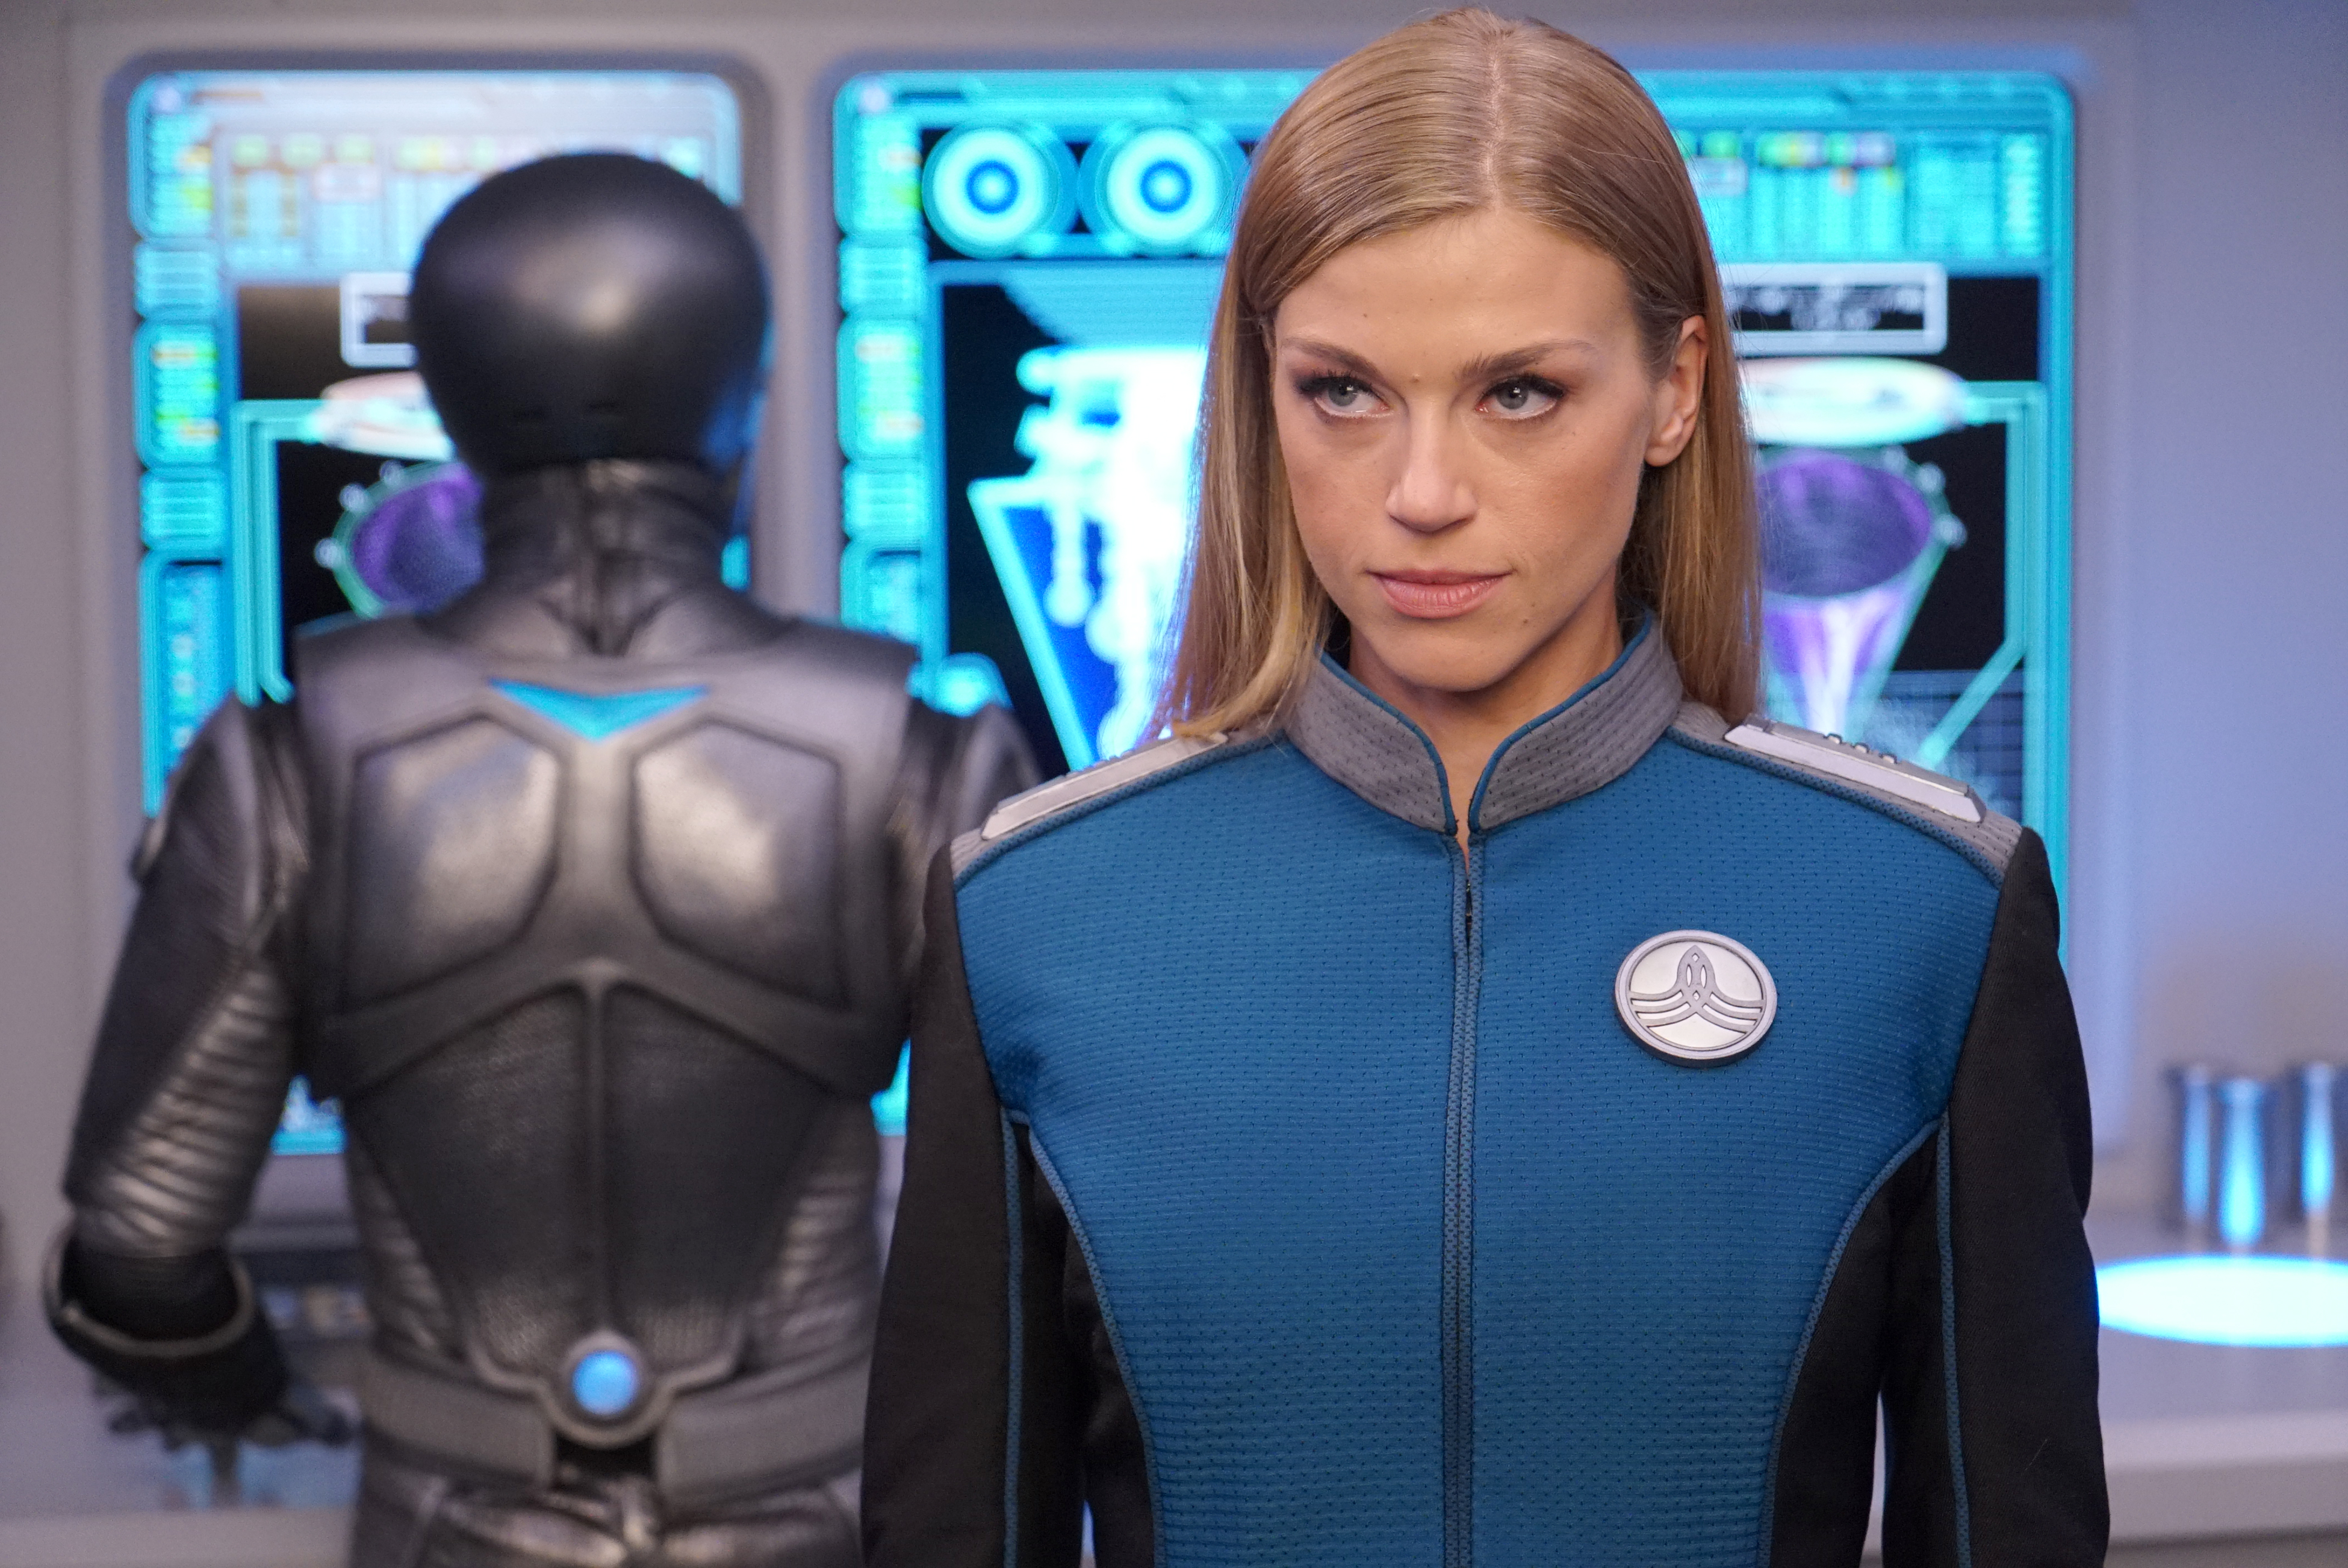 Part 1 of 'The Orville' Season Finale Shows Humanity in Series' Characters